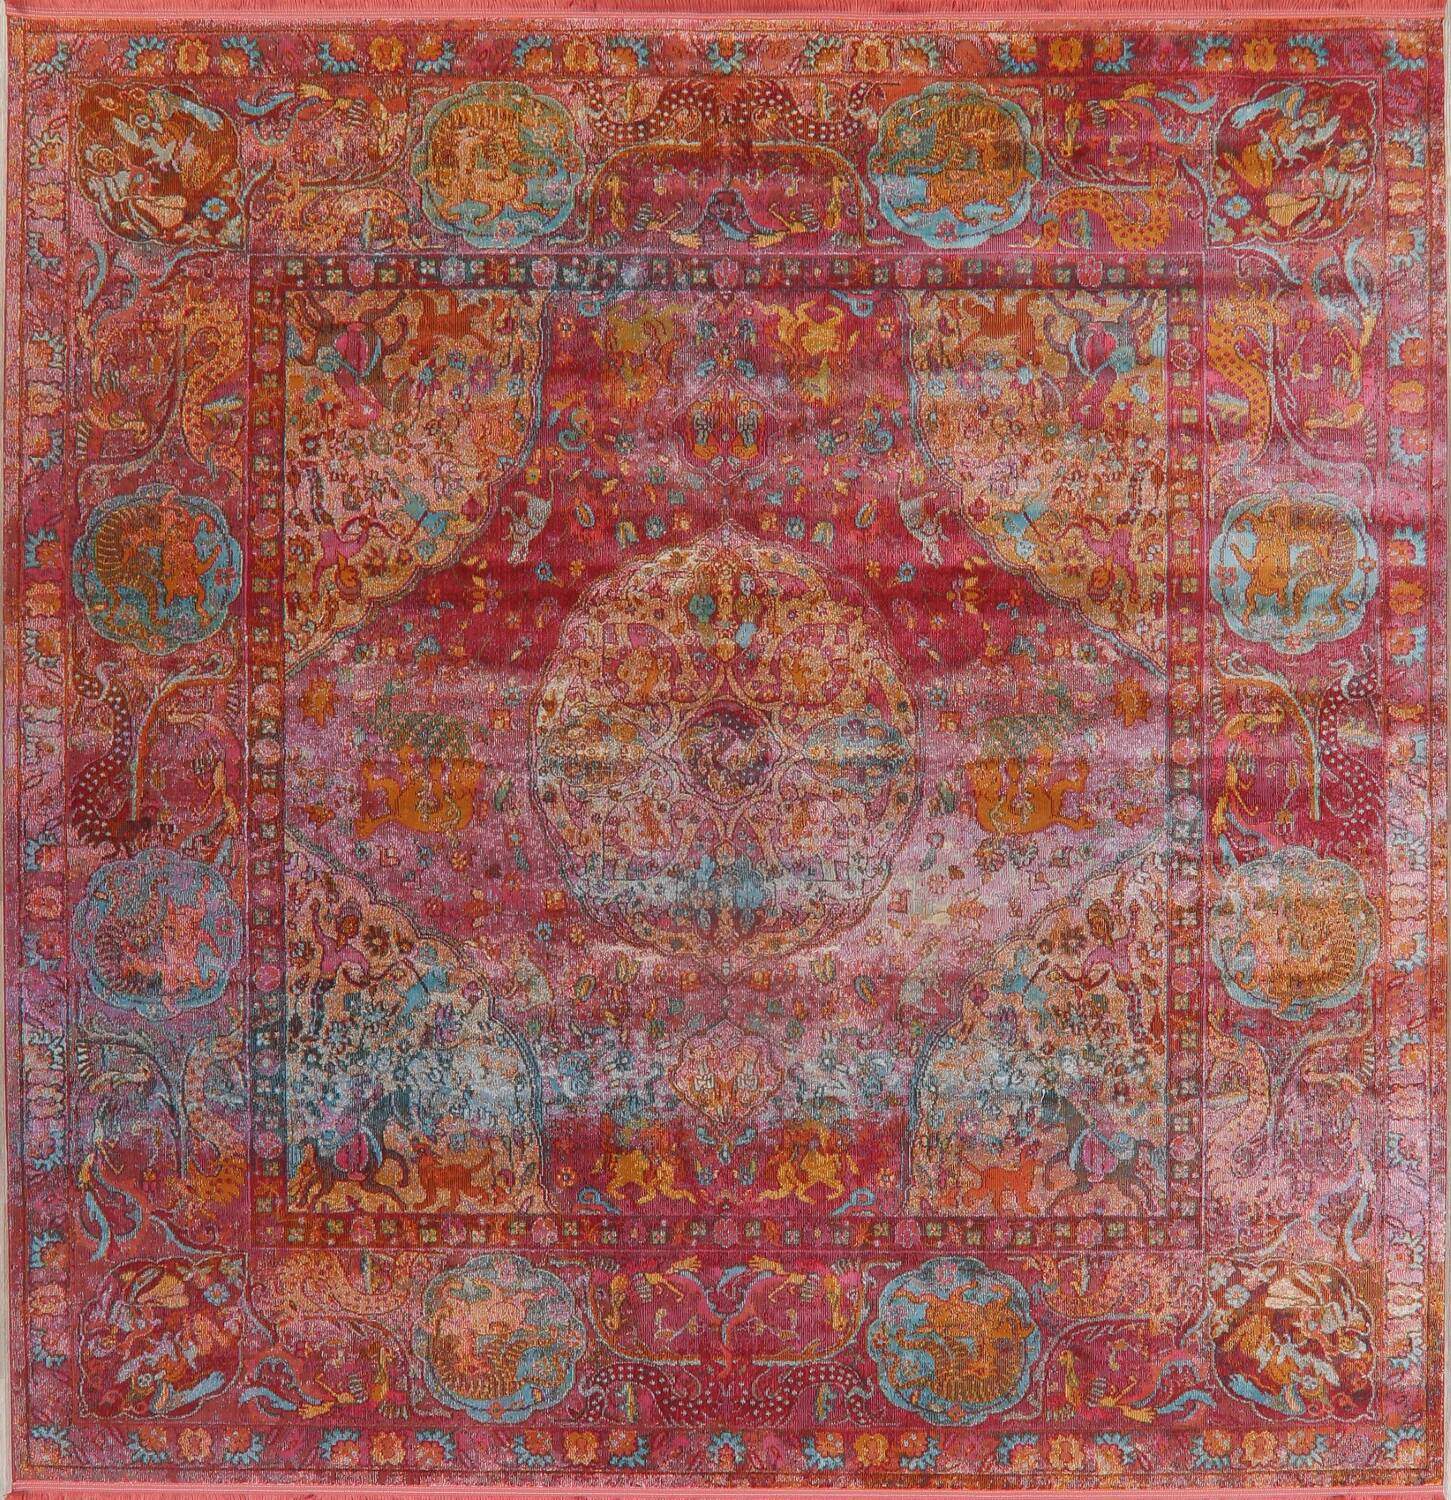 Hunting Design Pictorial Distressed Heat-Set Area Rugs image 25